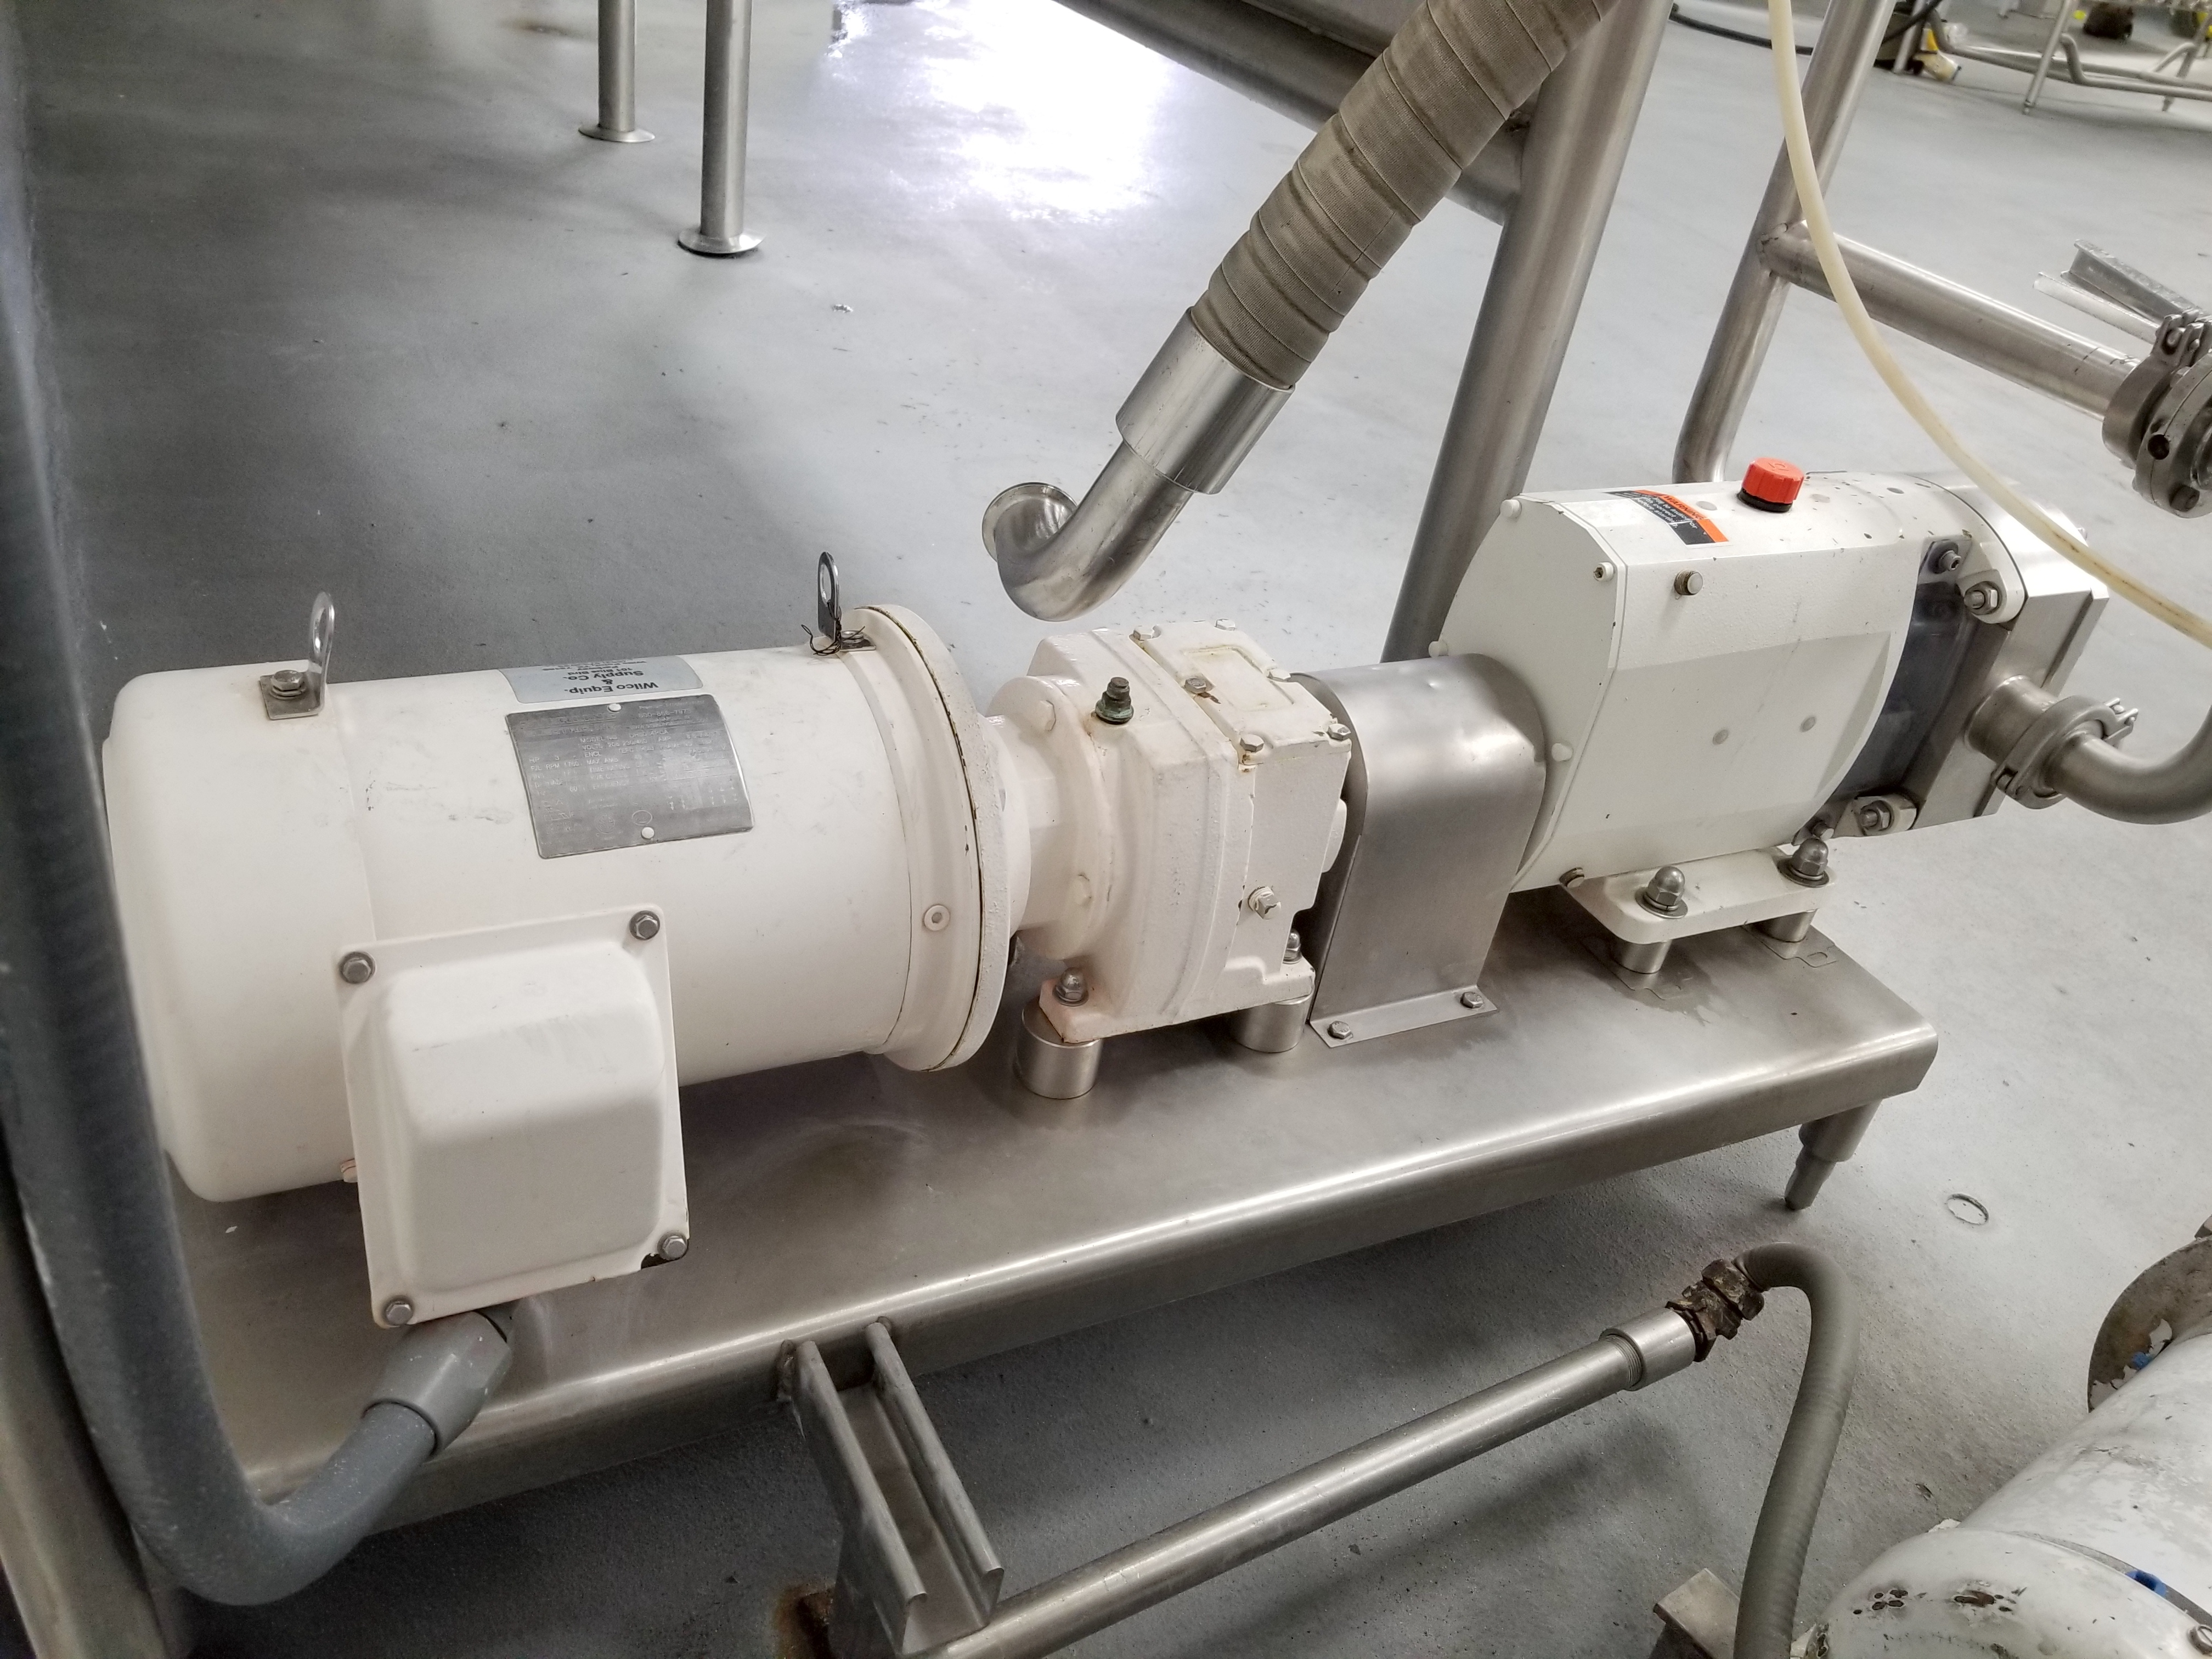 2015 Alfa Laval Positive Displacement Pump - Image 3 of 5